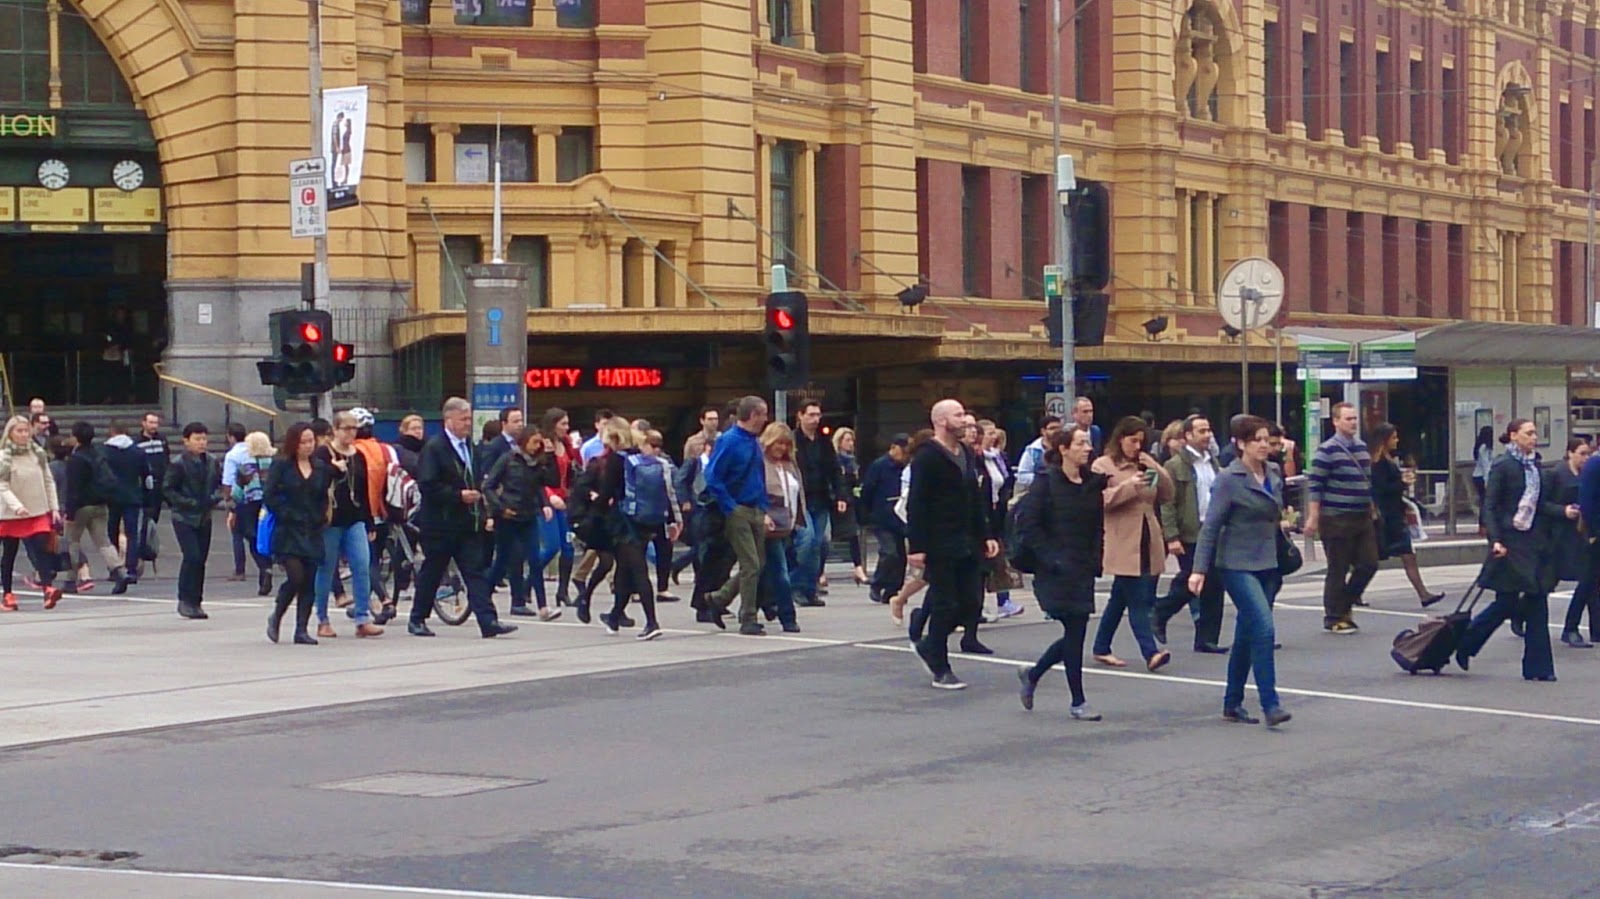 Flinders Street Station Friday Morning